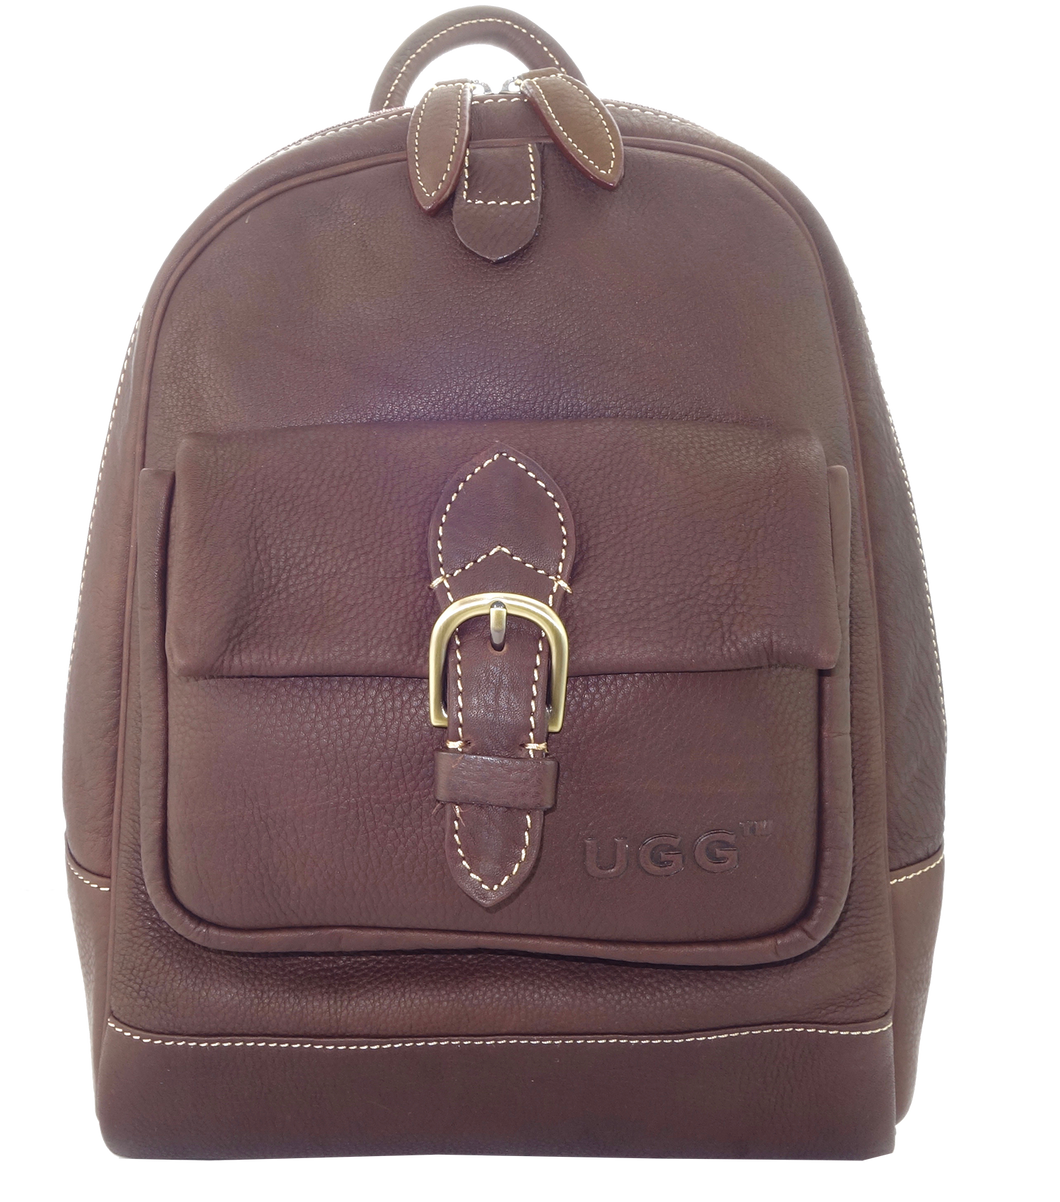 Lamb Leather Backpack - Dark Brown